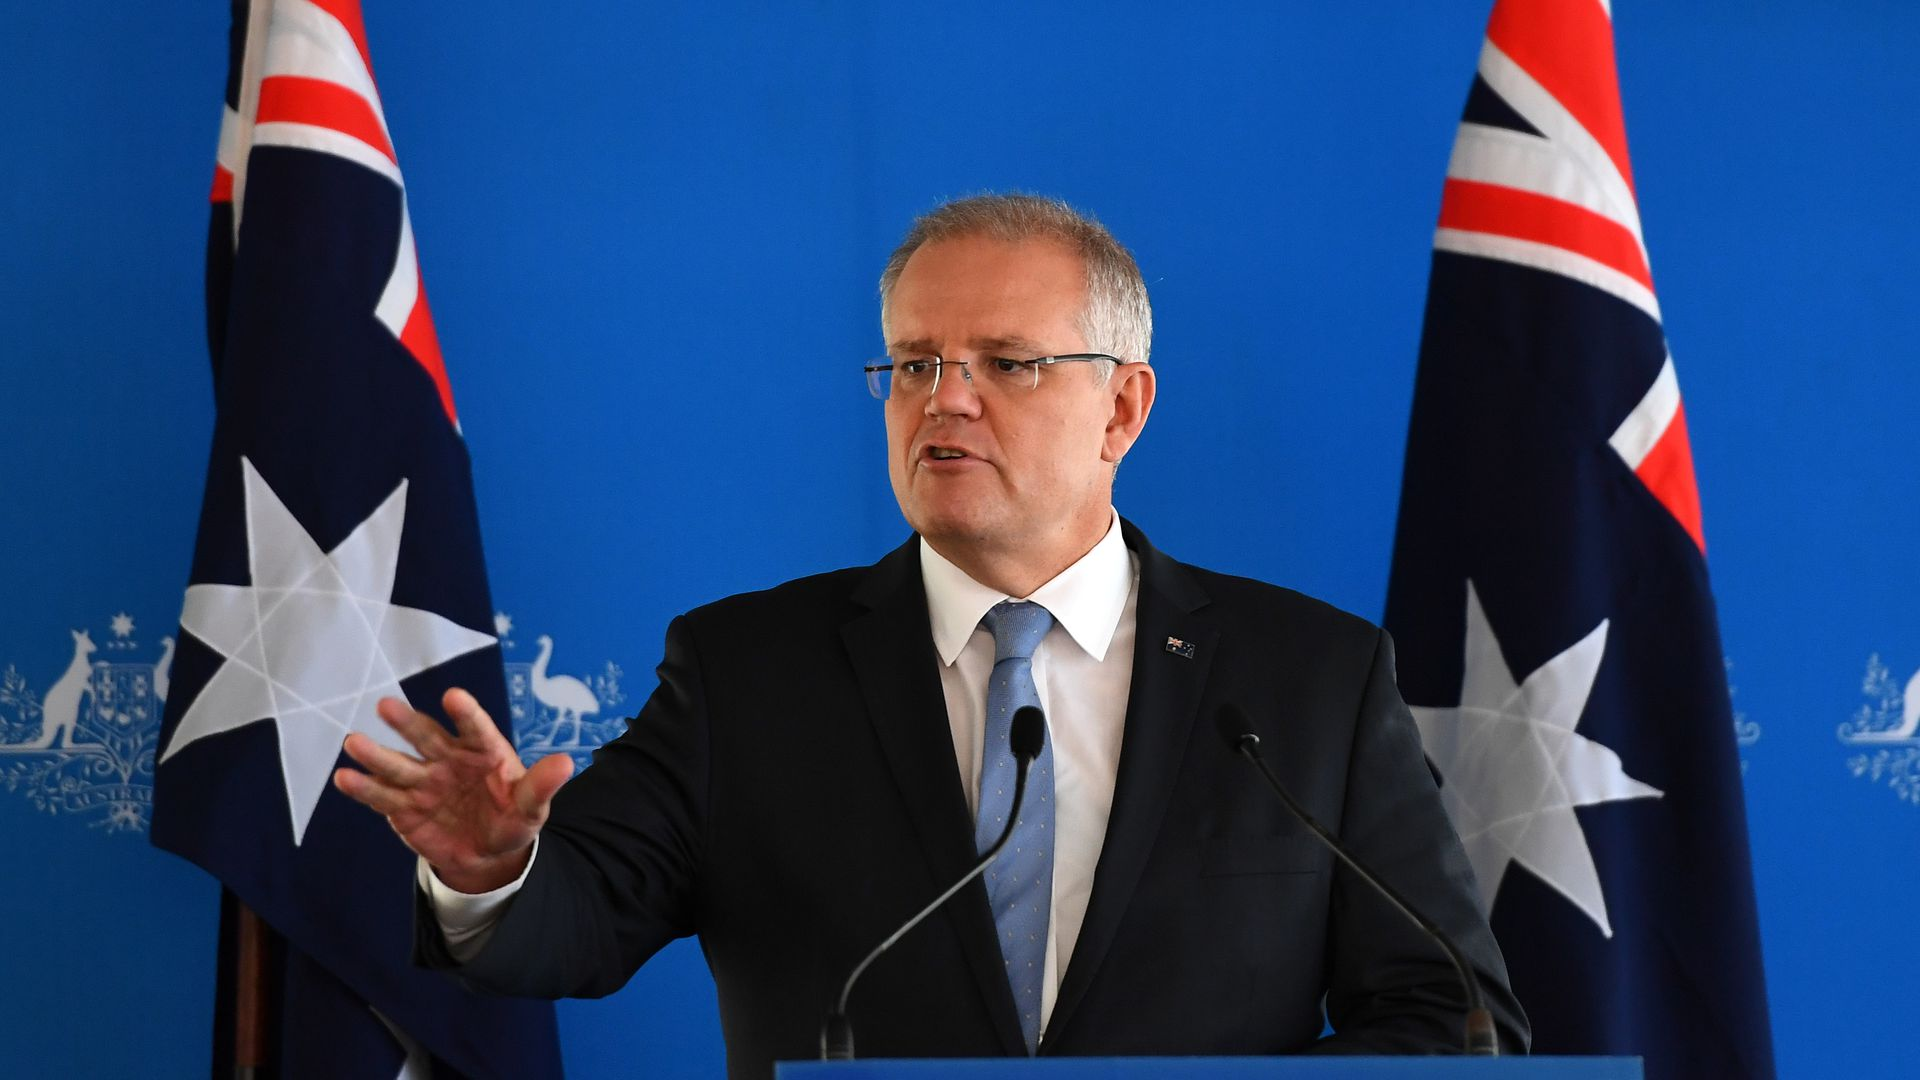 Scott Morrison spoke out over the live streaming of the New Zealand attacks.